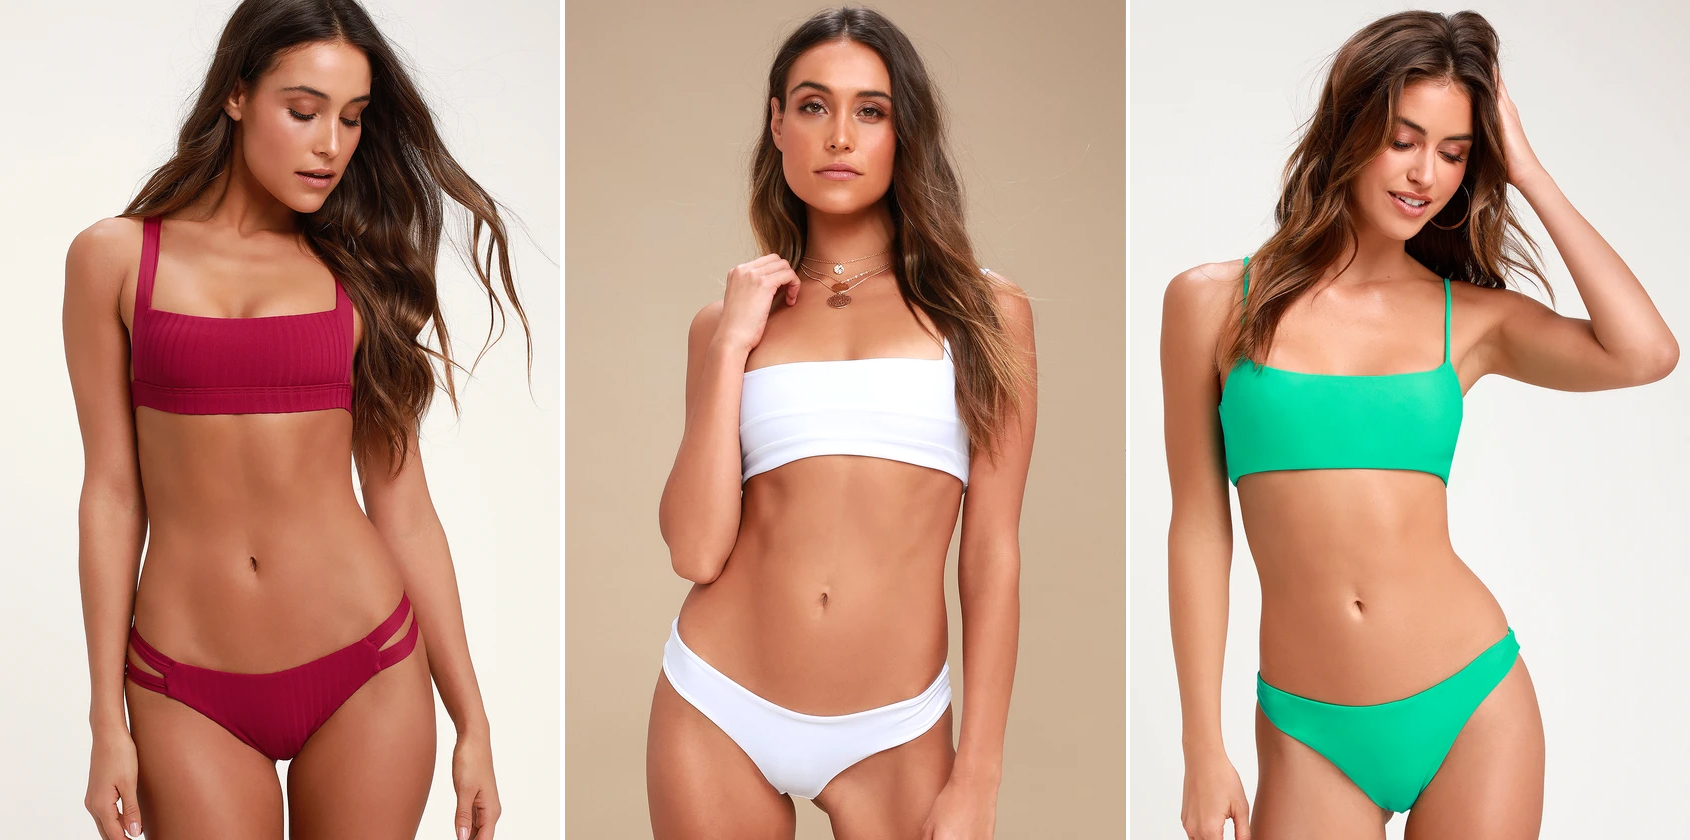 Swimwear 2019: The Most 'Gram-Worthy Swimsuit Trends To Have